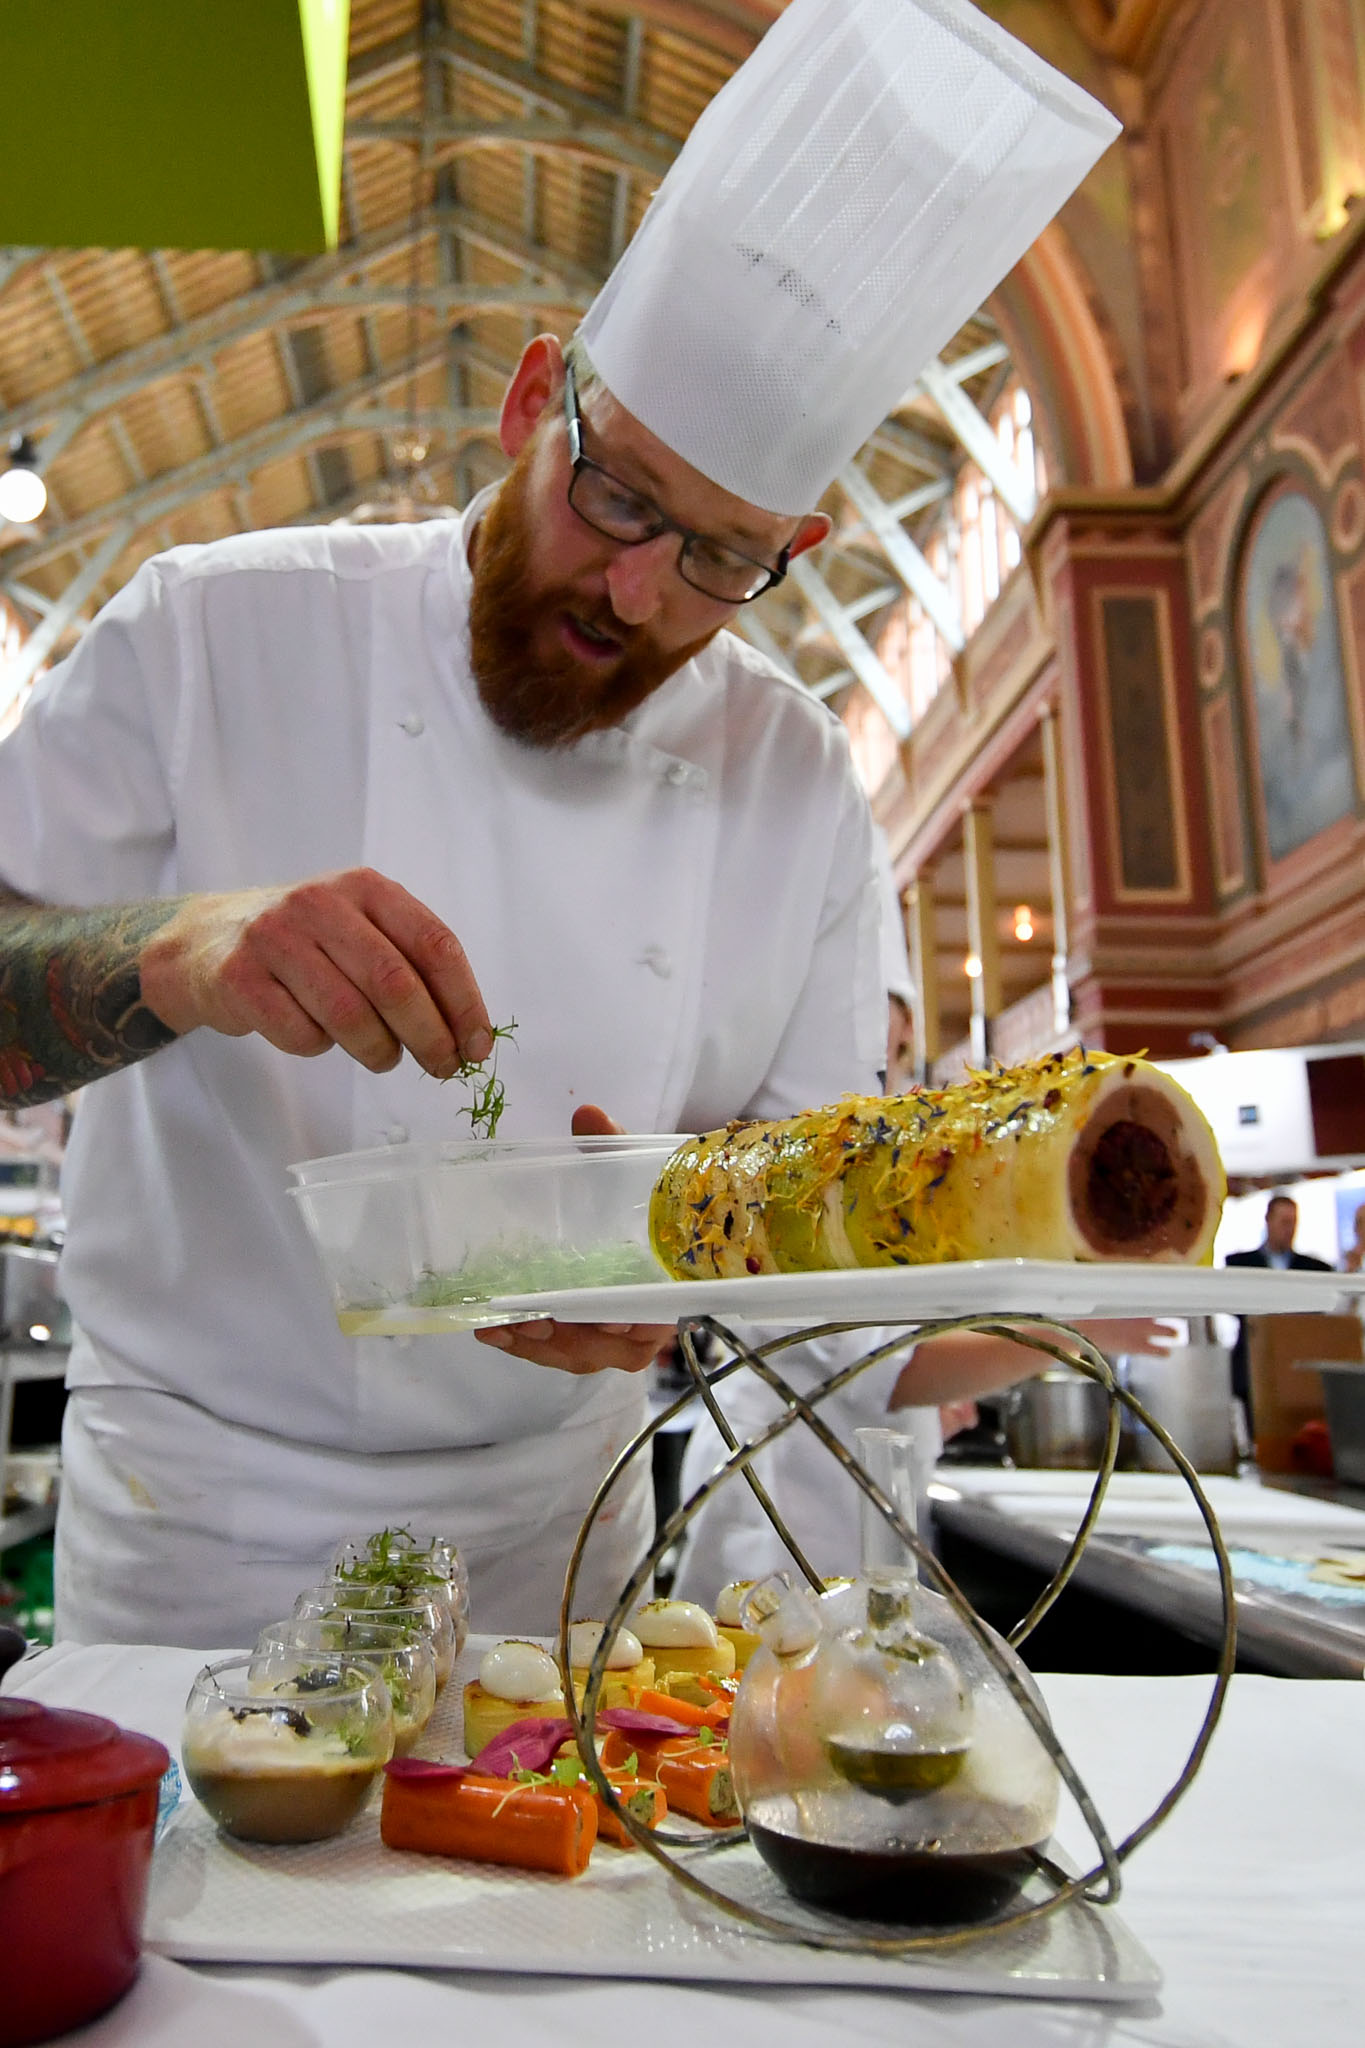 Melbourne, 30 May 2017 - Andrew Ballard of the Simmer Culinary in Mornington plates up his meat platter at the Australian selection trials of the Bocuse d'Or culinary competition held during the Food Service Australia show at the Royal Exhibition Building in Melbourne, Australia. Photo Sydney Low